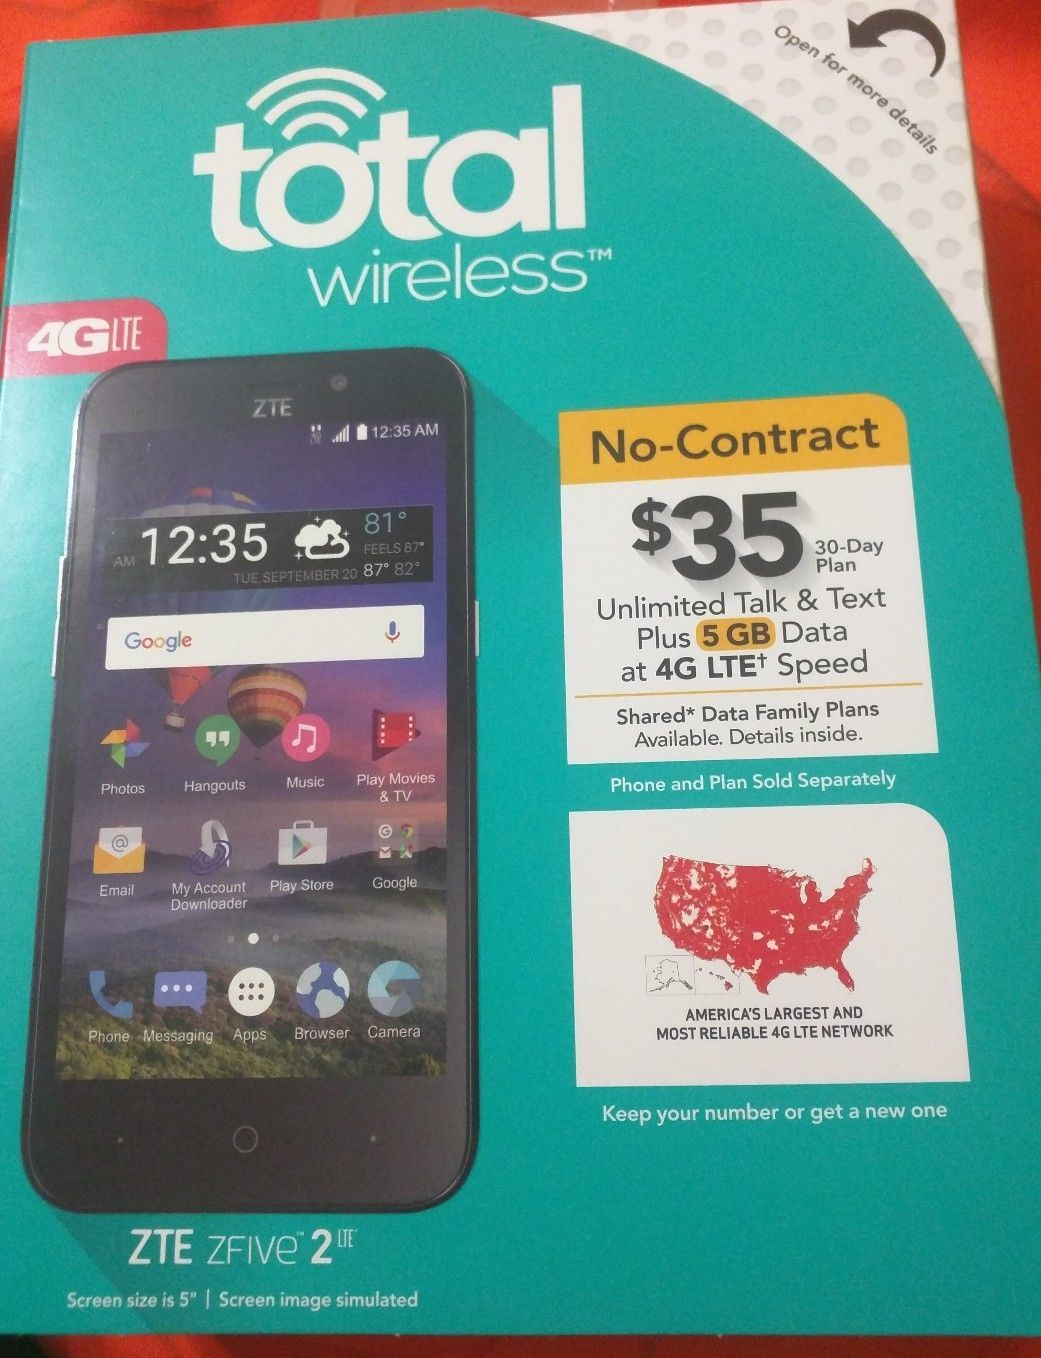 New Total Wireless Zte Zfive 2 Lte Z837VL and 28 similar items